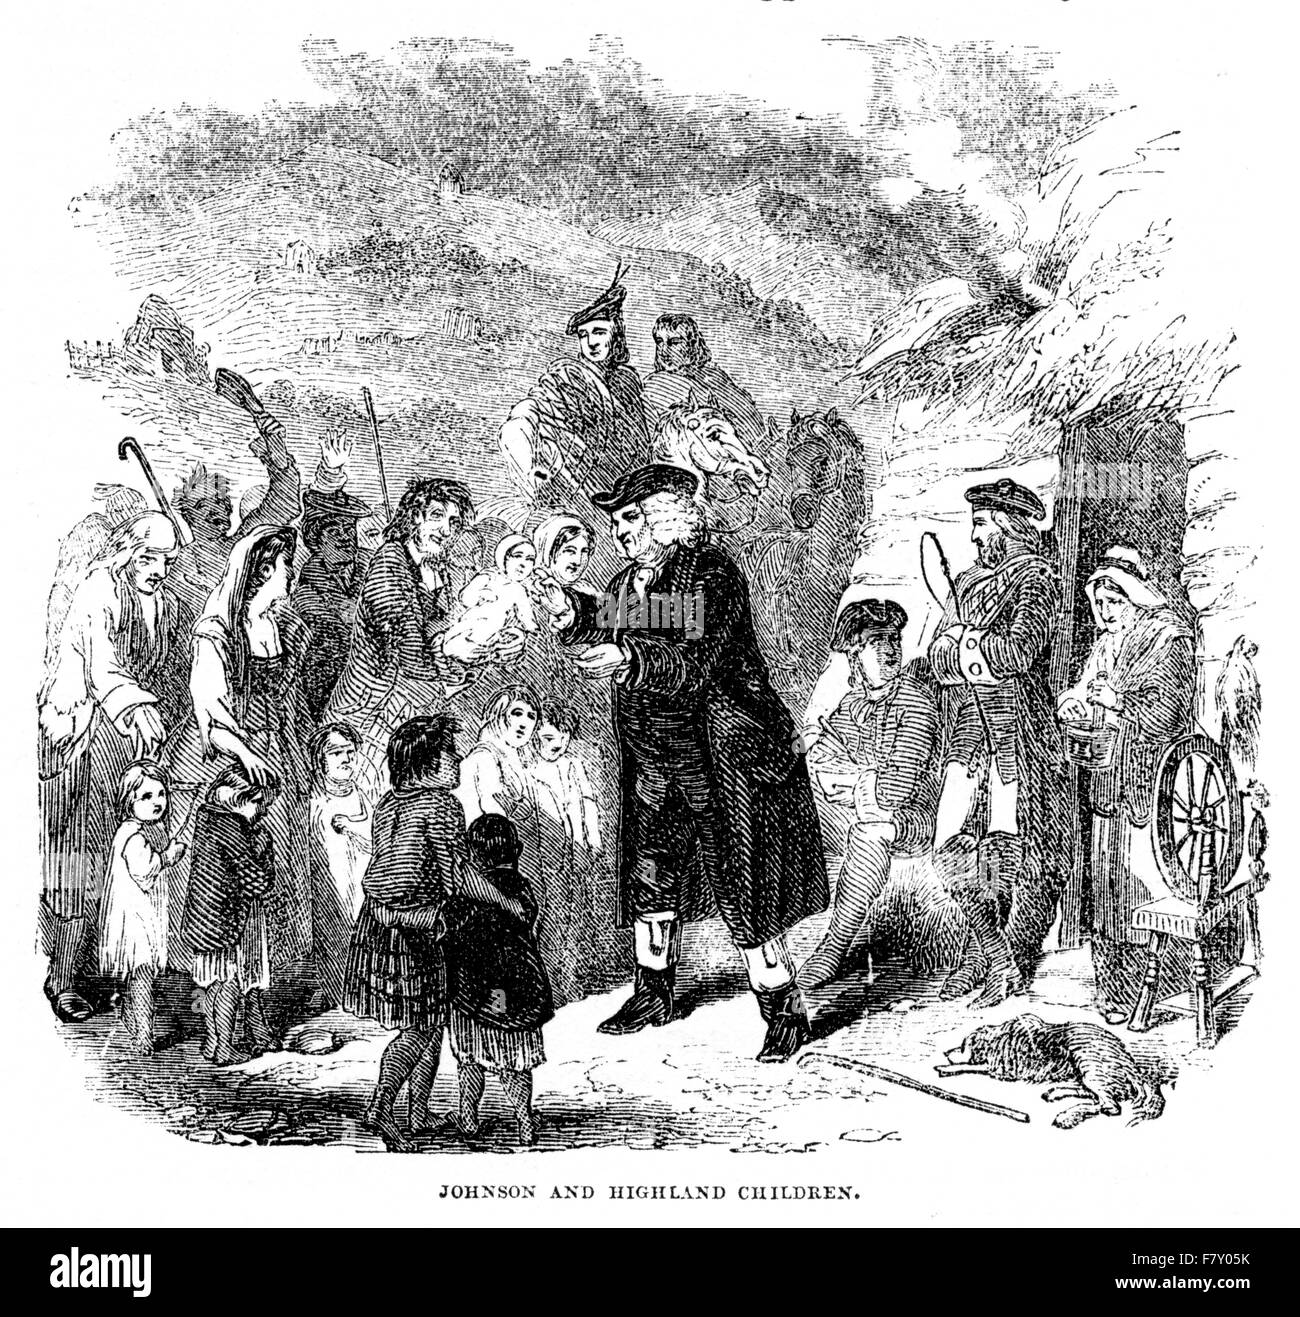 An engraving of Doctor Johnson and Highland Children scanned at high resolution from a book printed in 1852. At - Stock Image